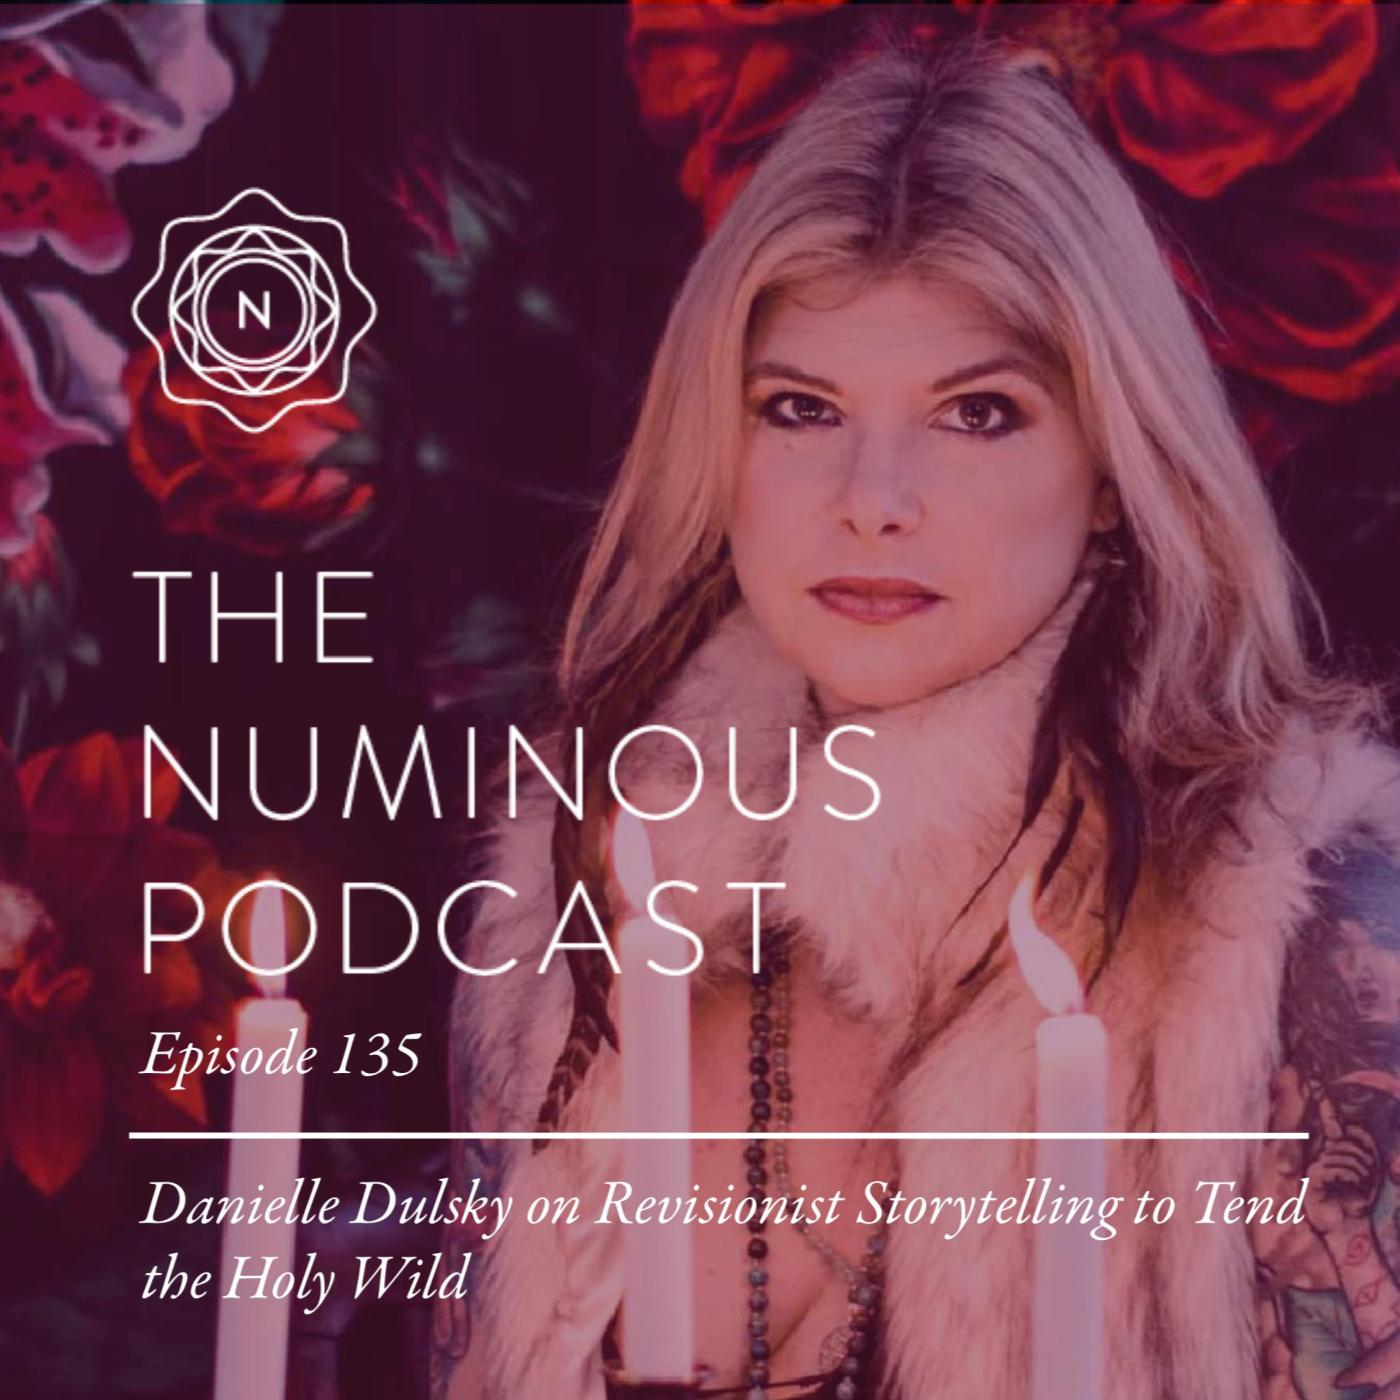 TNP135: Danielle Dulsky on Revisionist Storytelling to Tend the Holy Wild